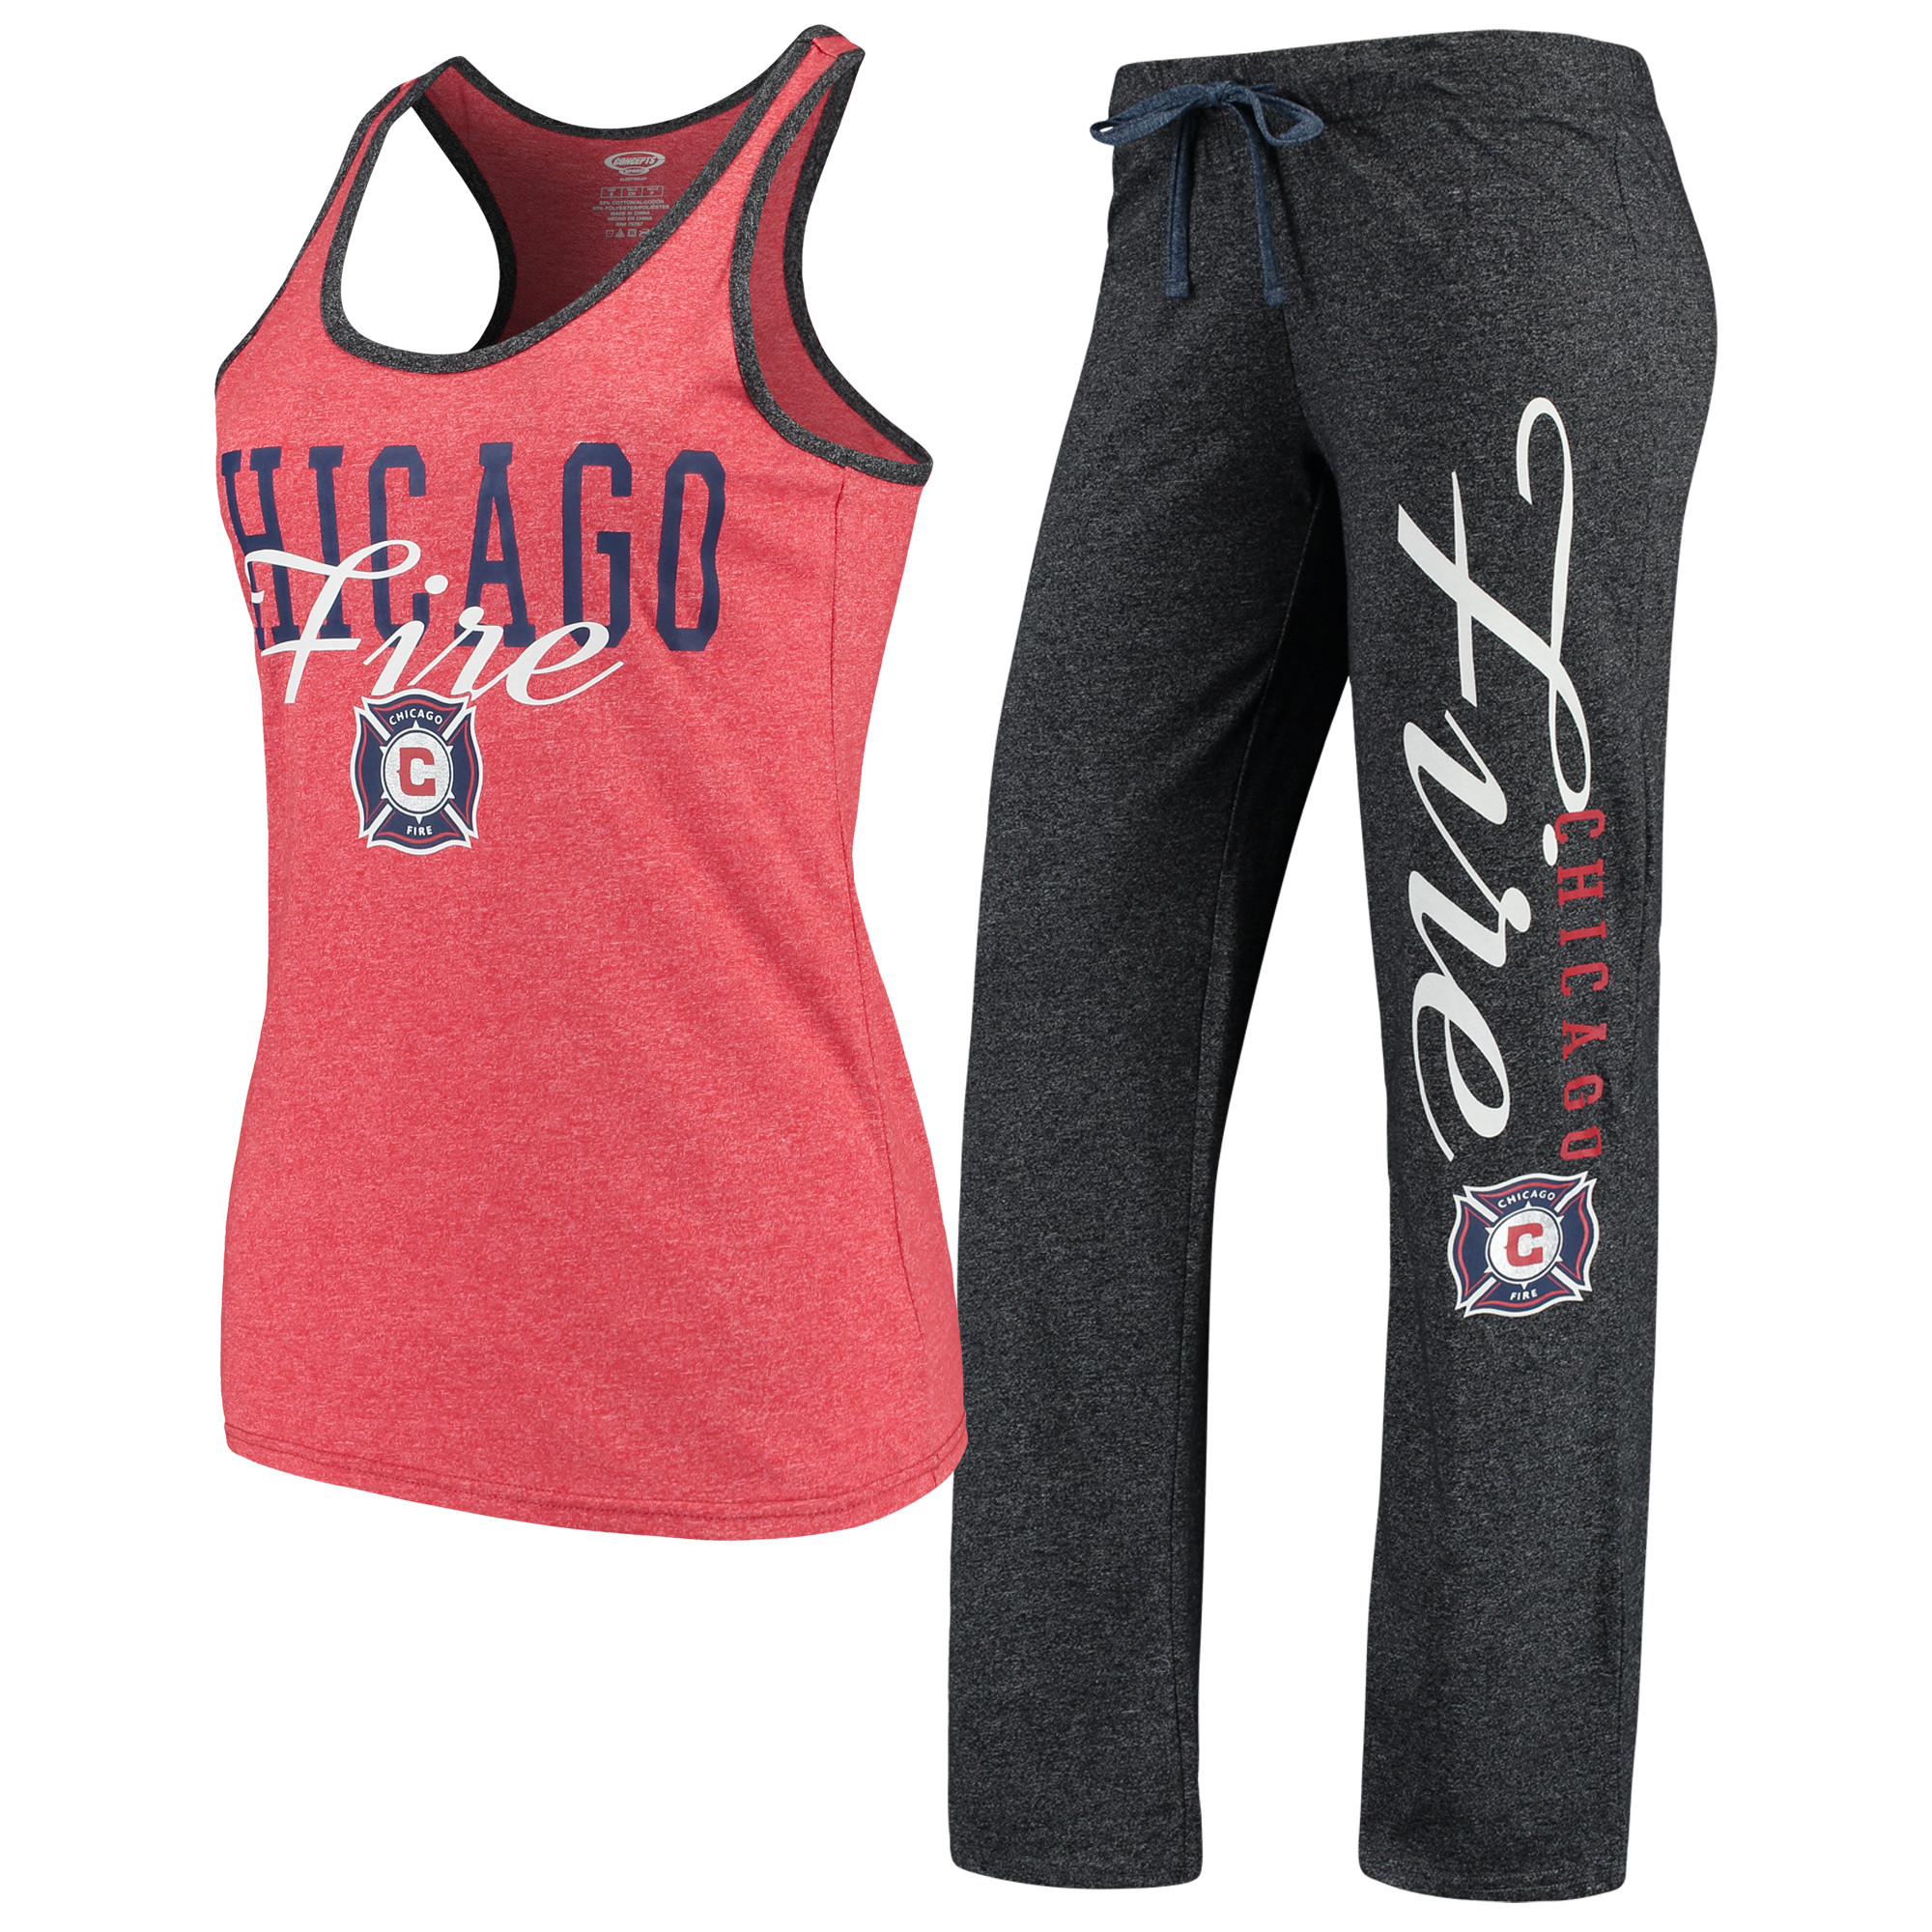 Chicago Fire Concepts Sport Women's Spar Tank Top & Pants Sleep Set - Heathered Red/Heathered Charcoal